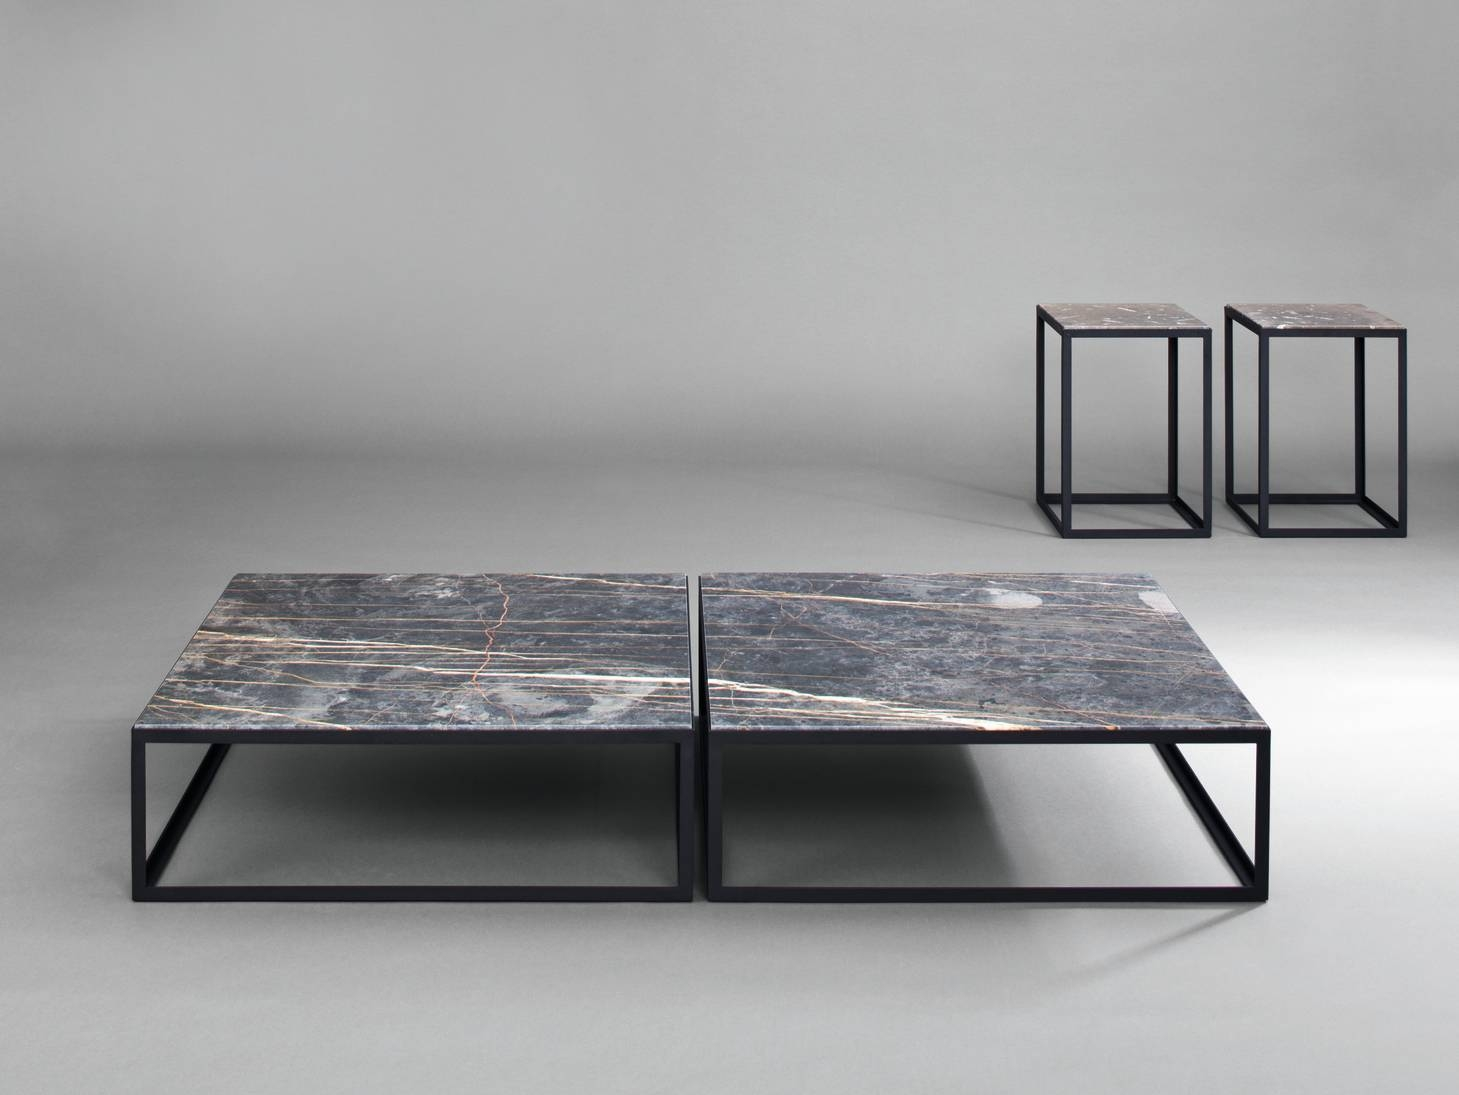 Low Black Square Coffee Table | Coffee Tables Decoration throughout Low Square Coffee Tables (Image 15 of 30)